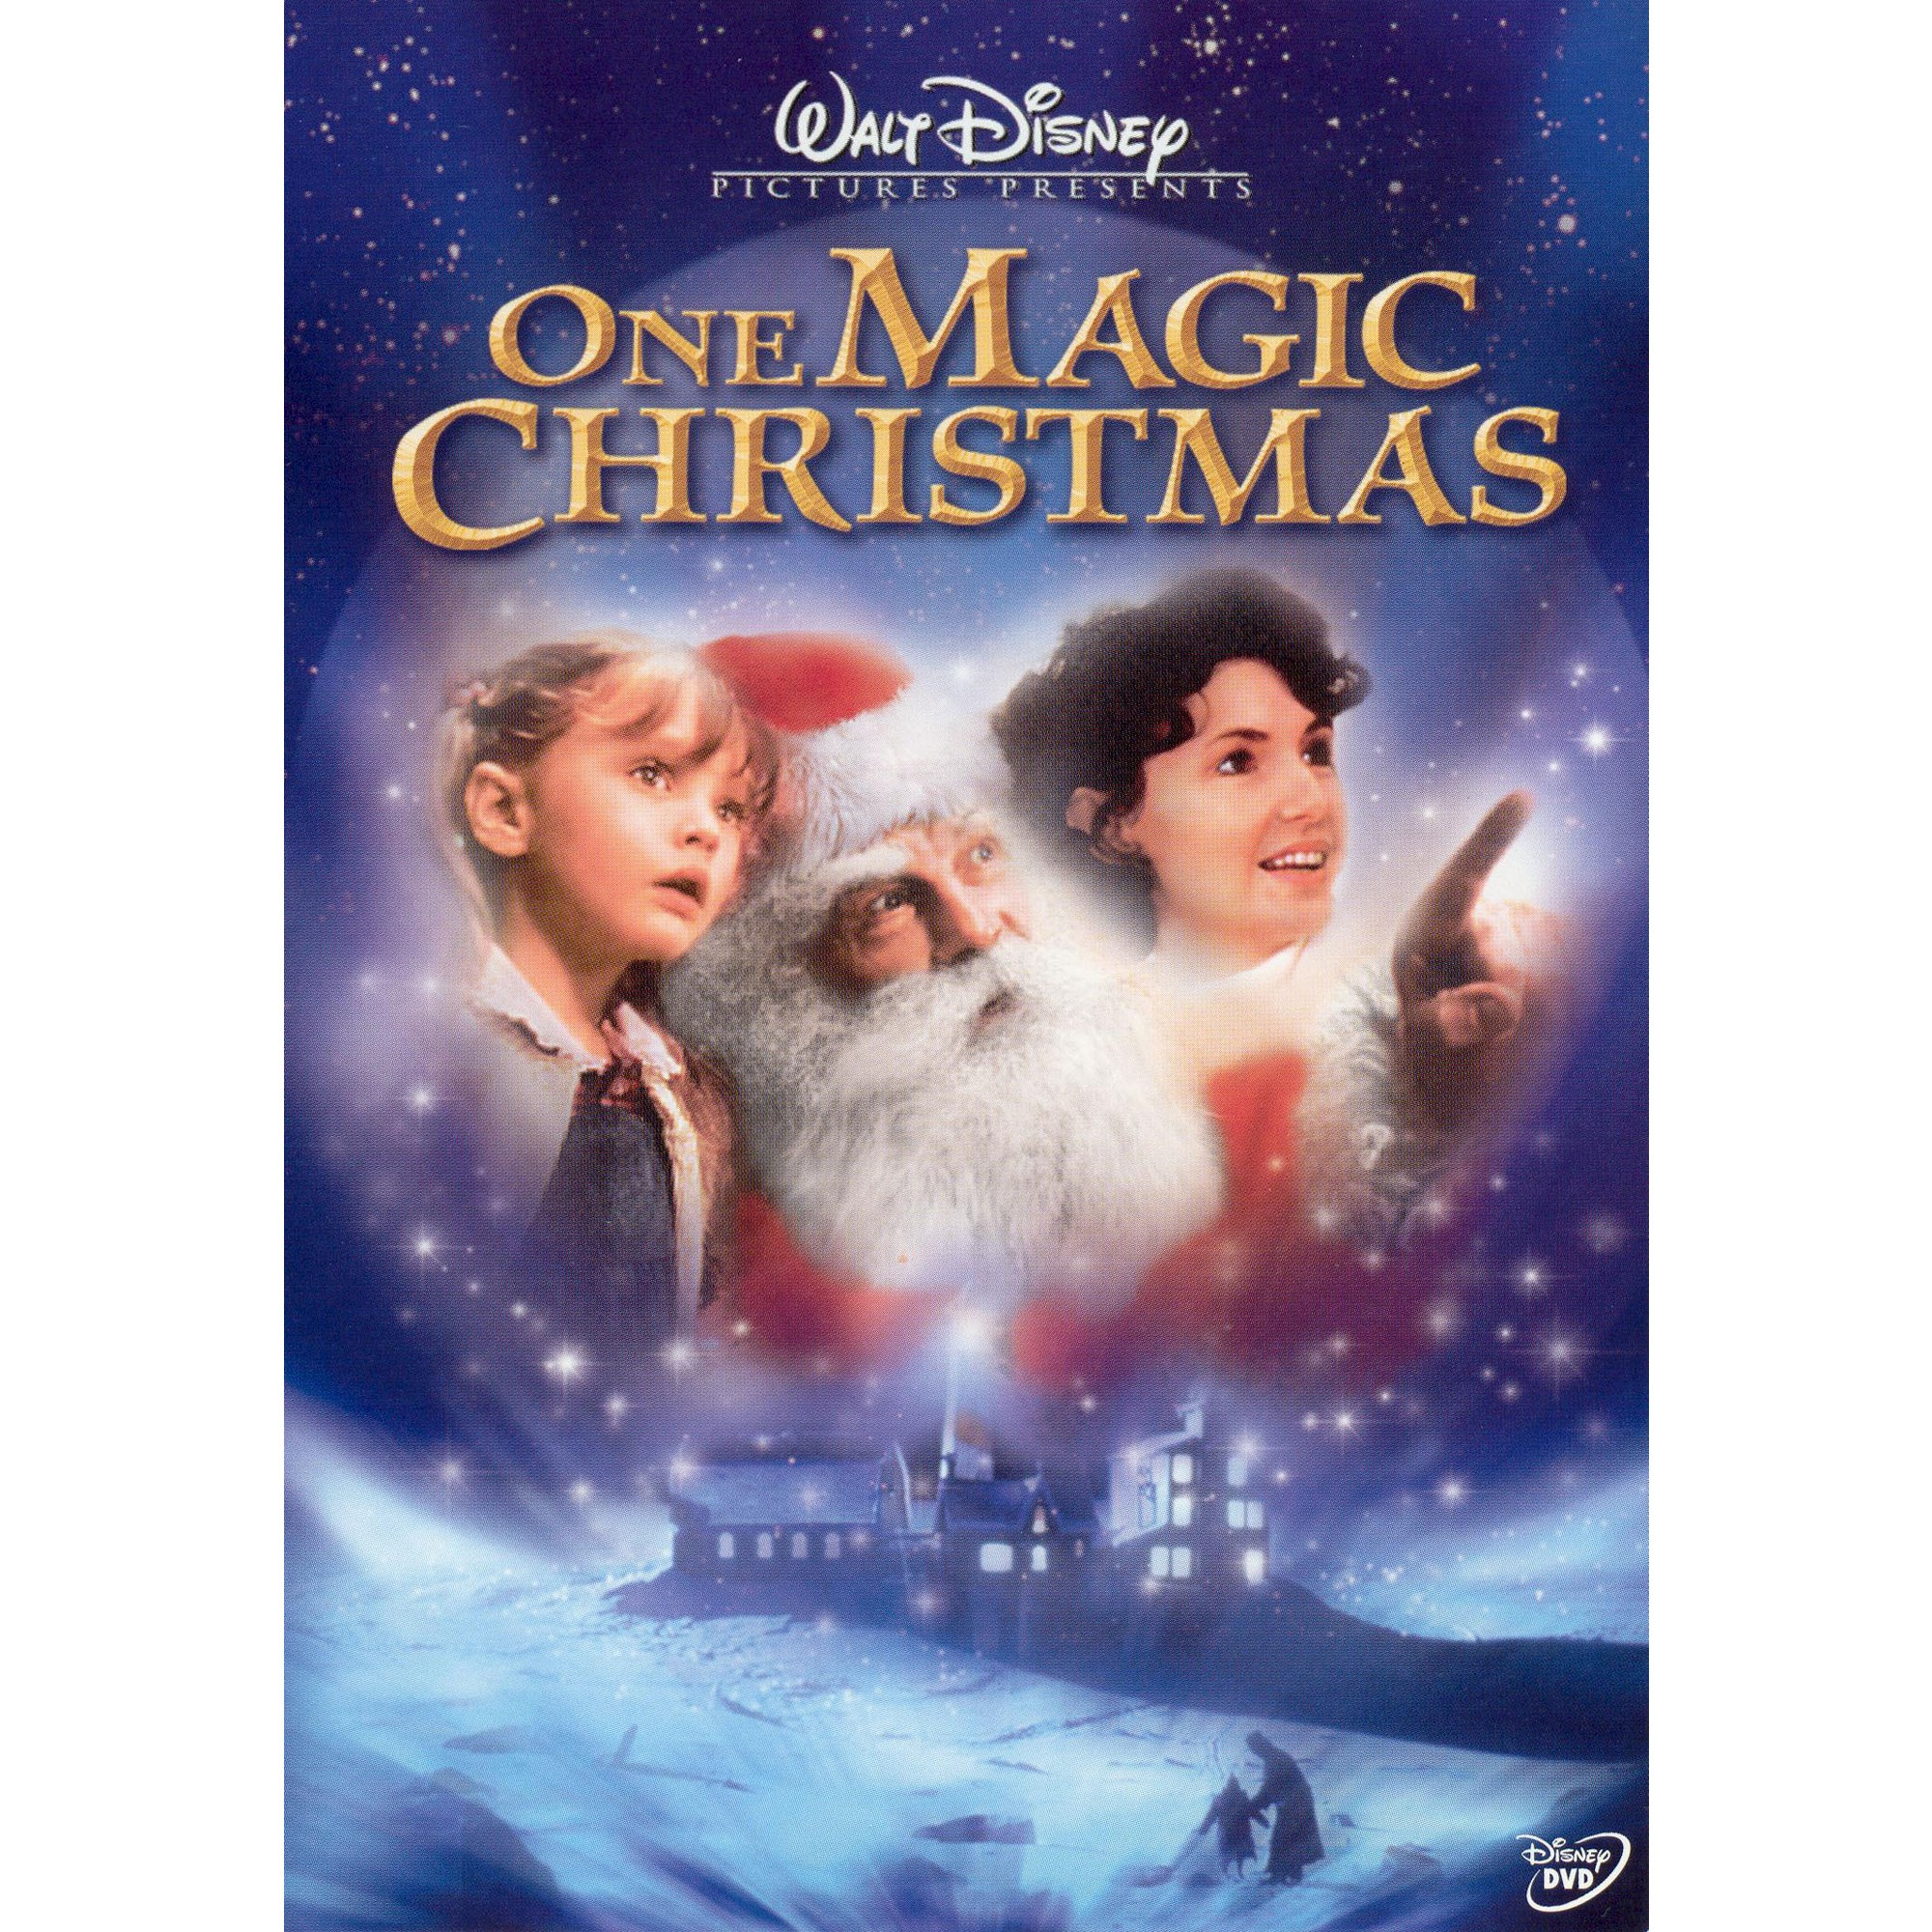 One magic christmas (Dvd) in 2018 | Products | Pinterest | Christmas ...